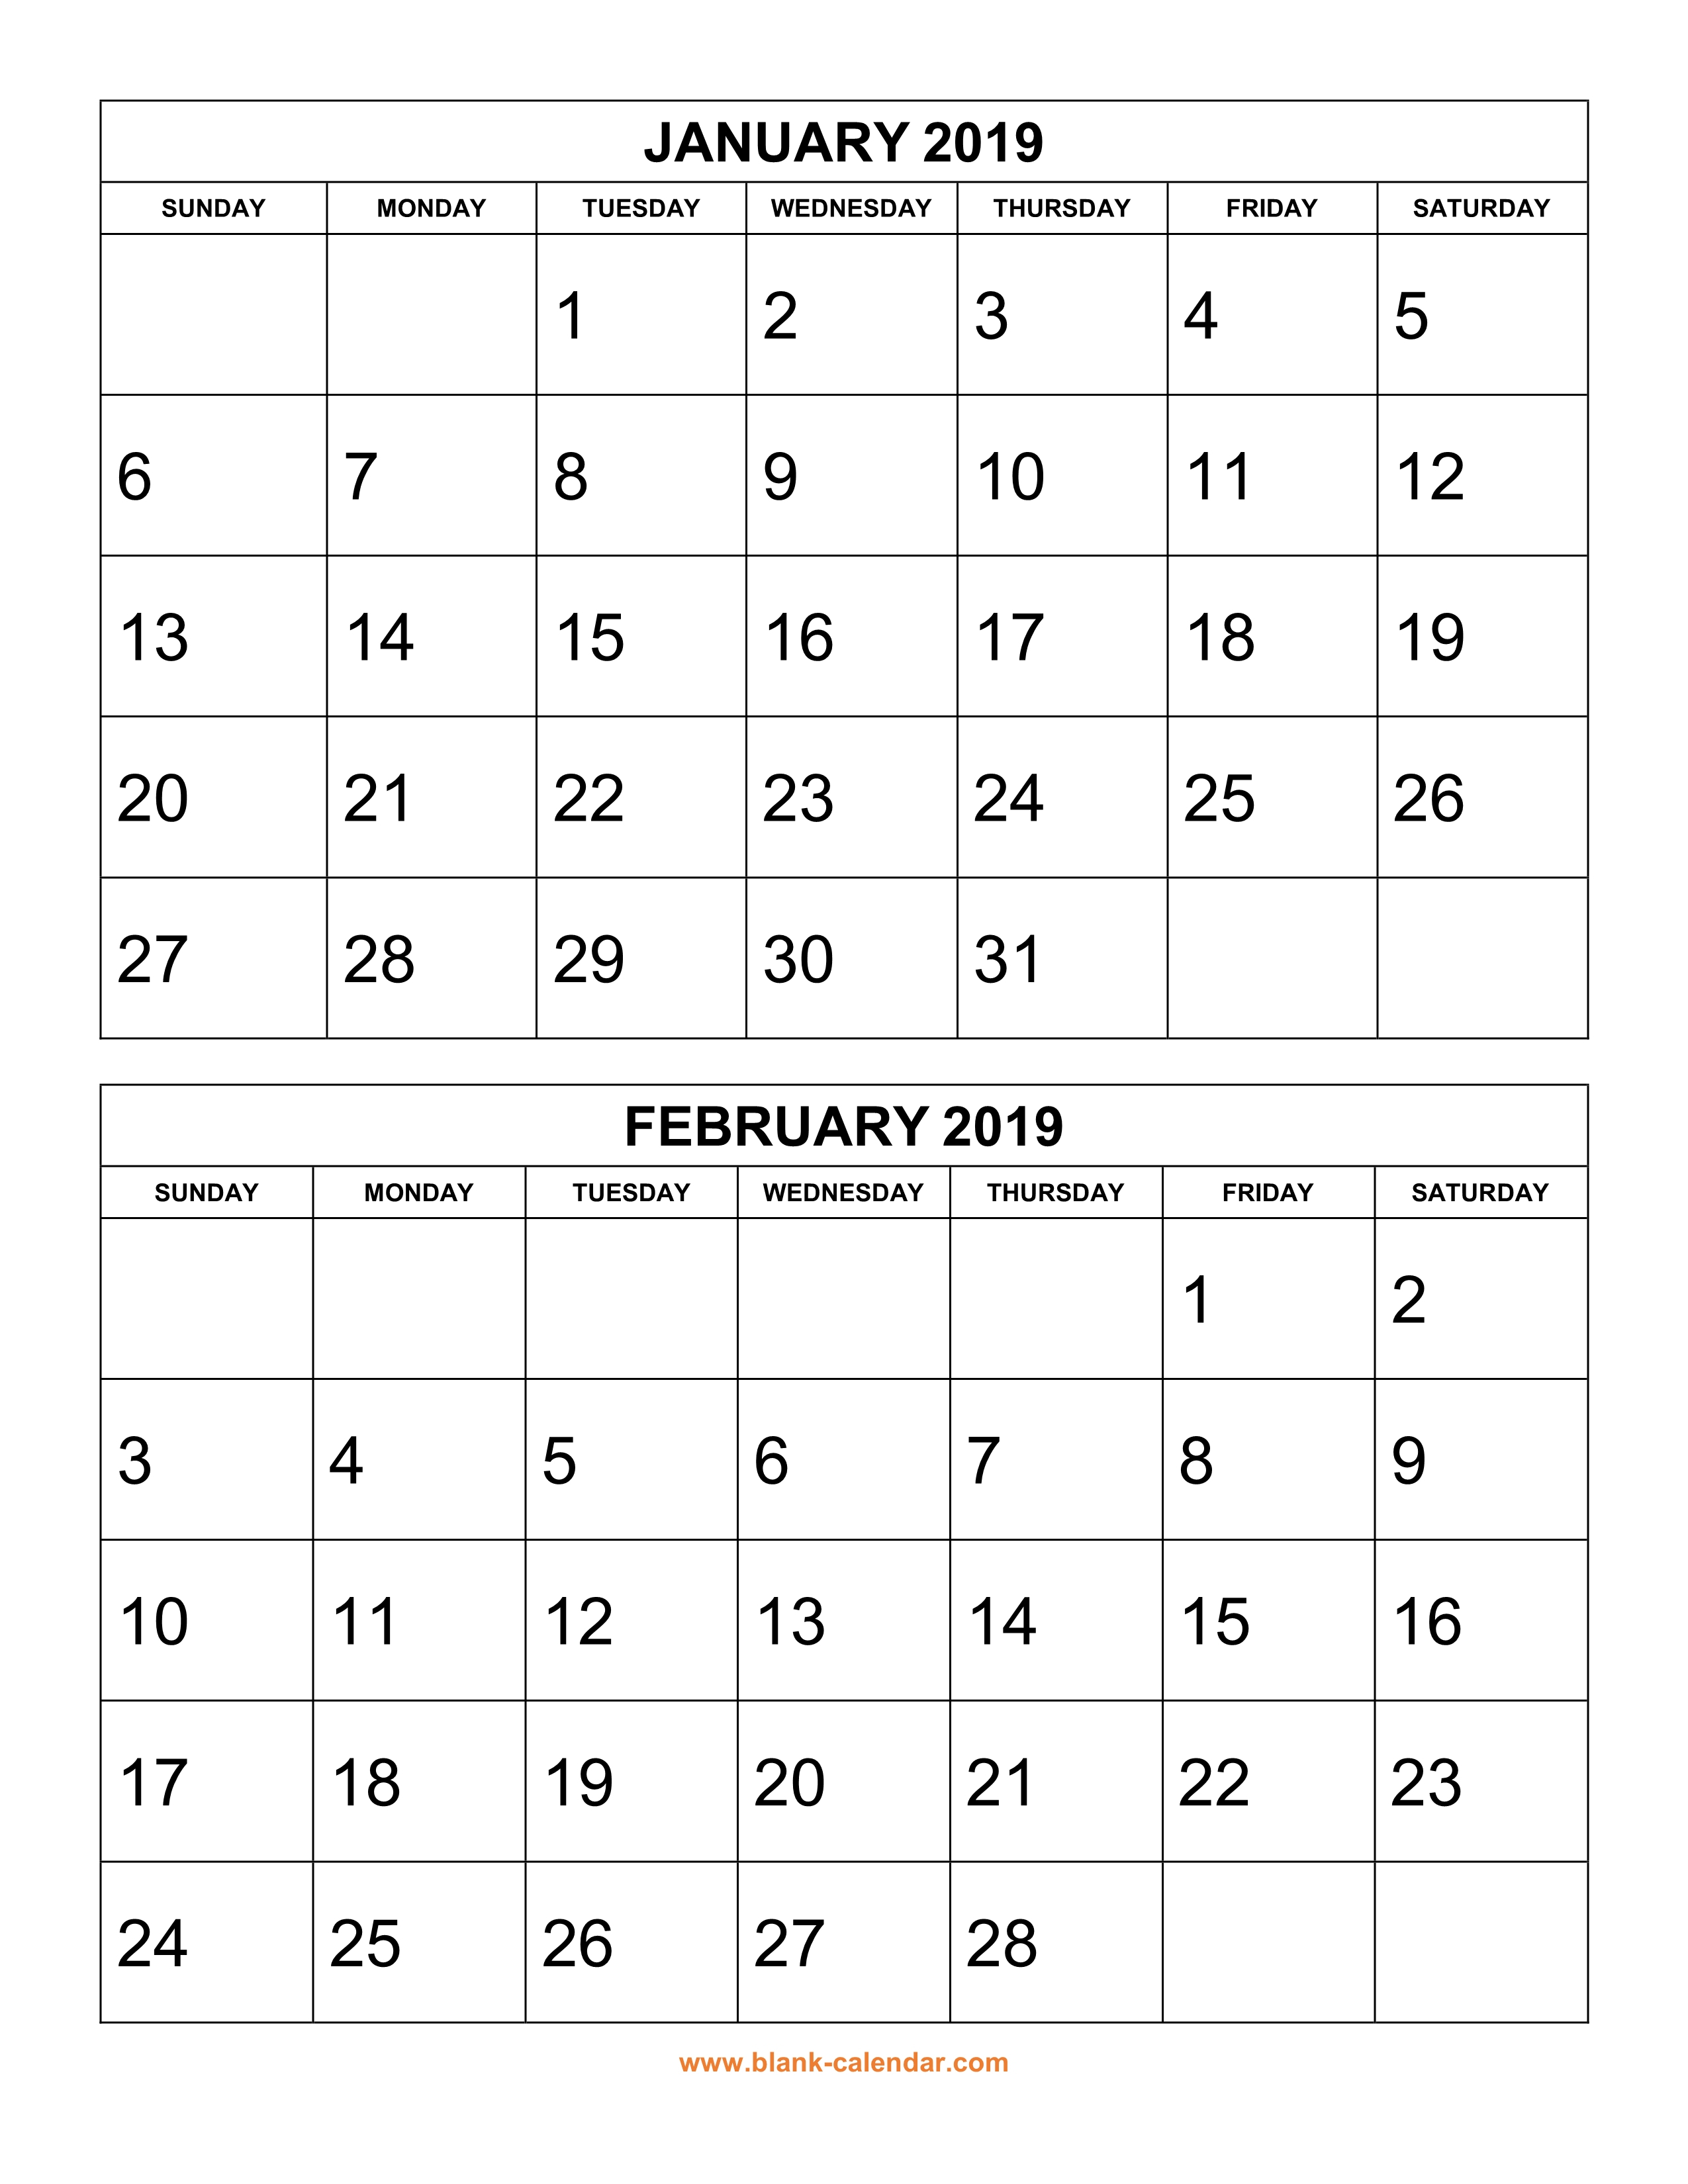 Free Download Printable Calendar 2019, 2 Months Per Page, 6 Pages